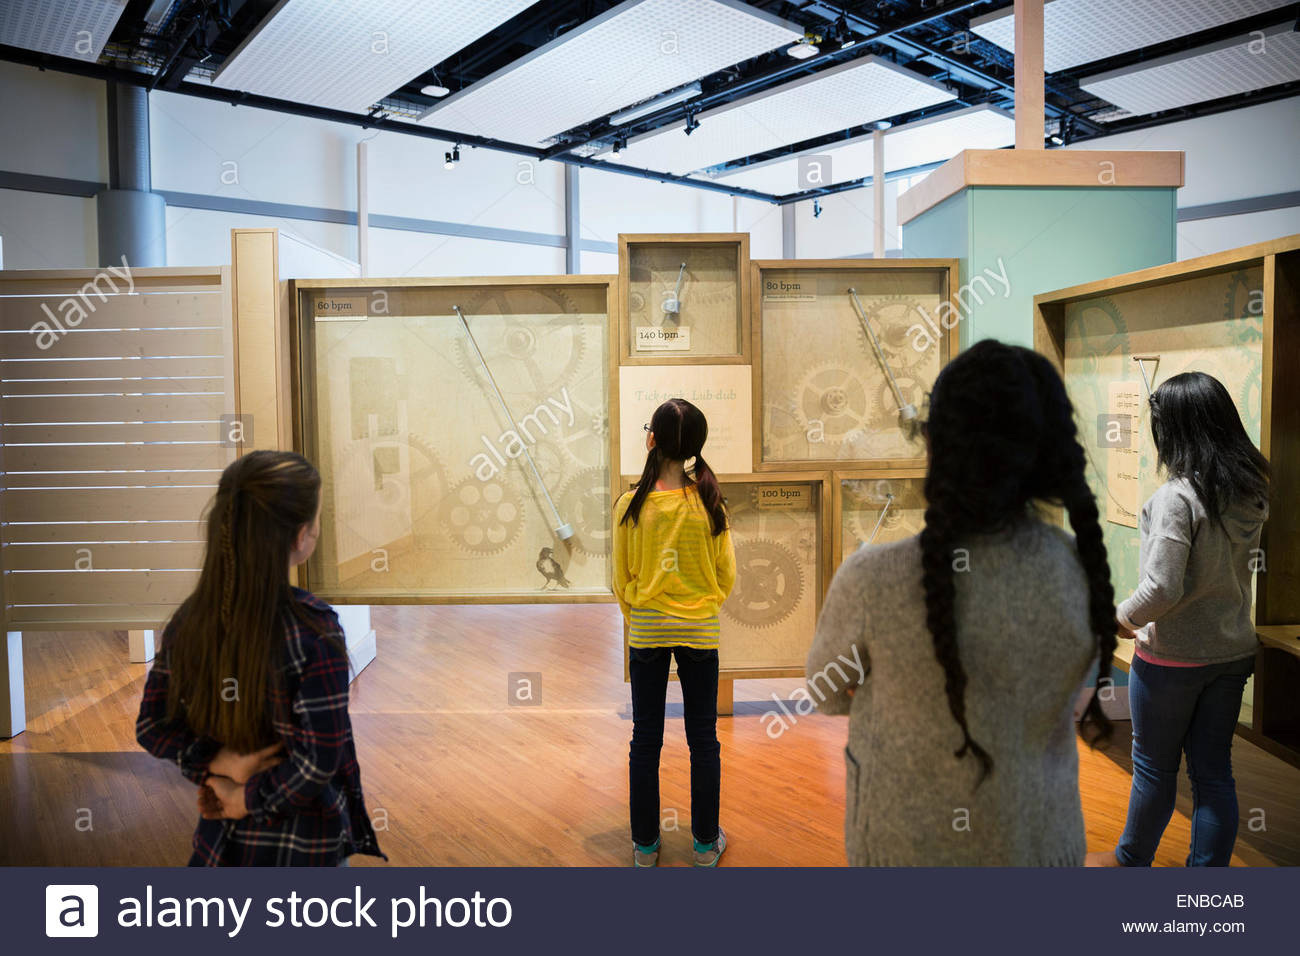 Students examining clock exhibit at science center - Stock Image